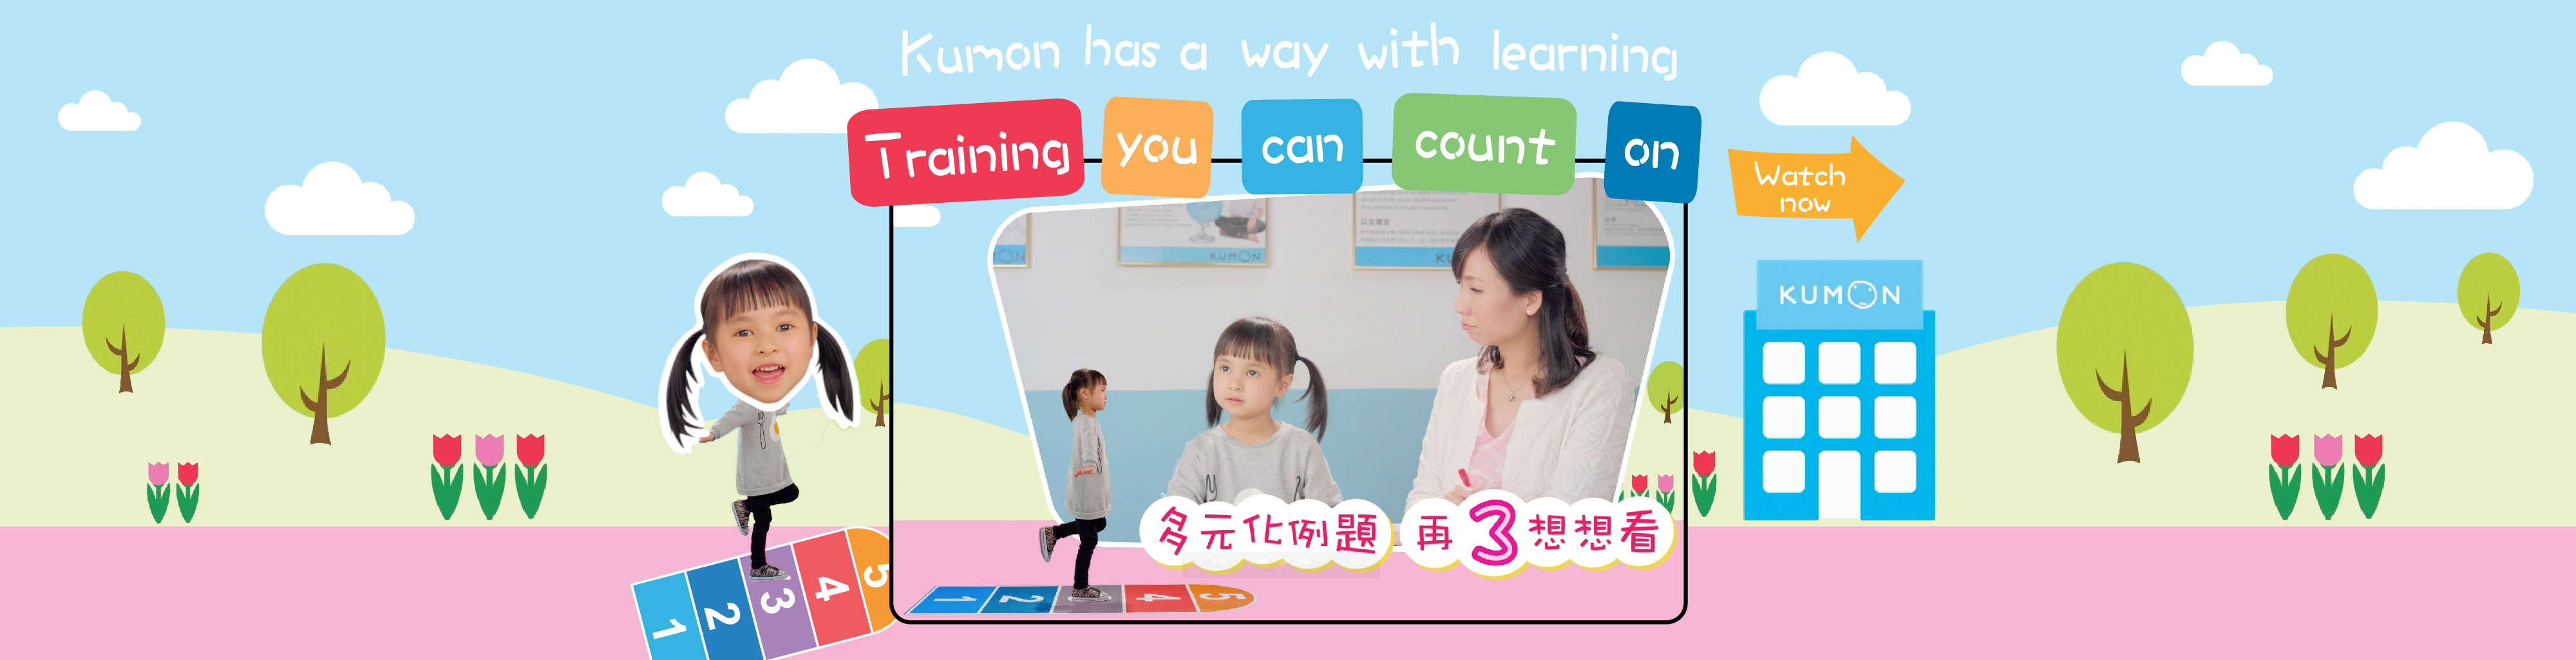 Training-you-can-count-on_eng-01